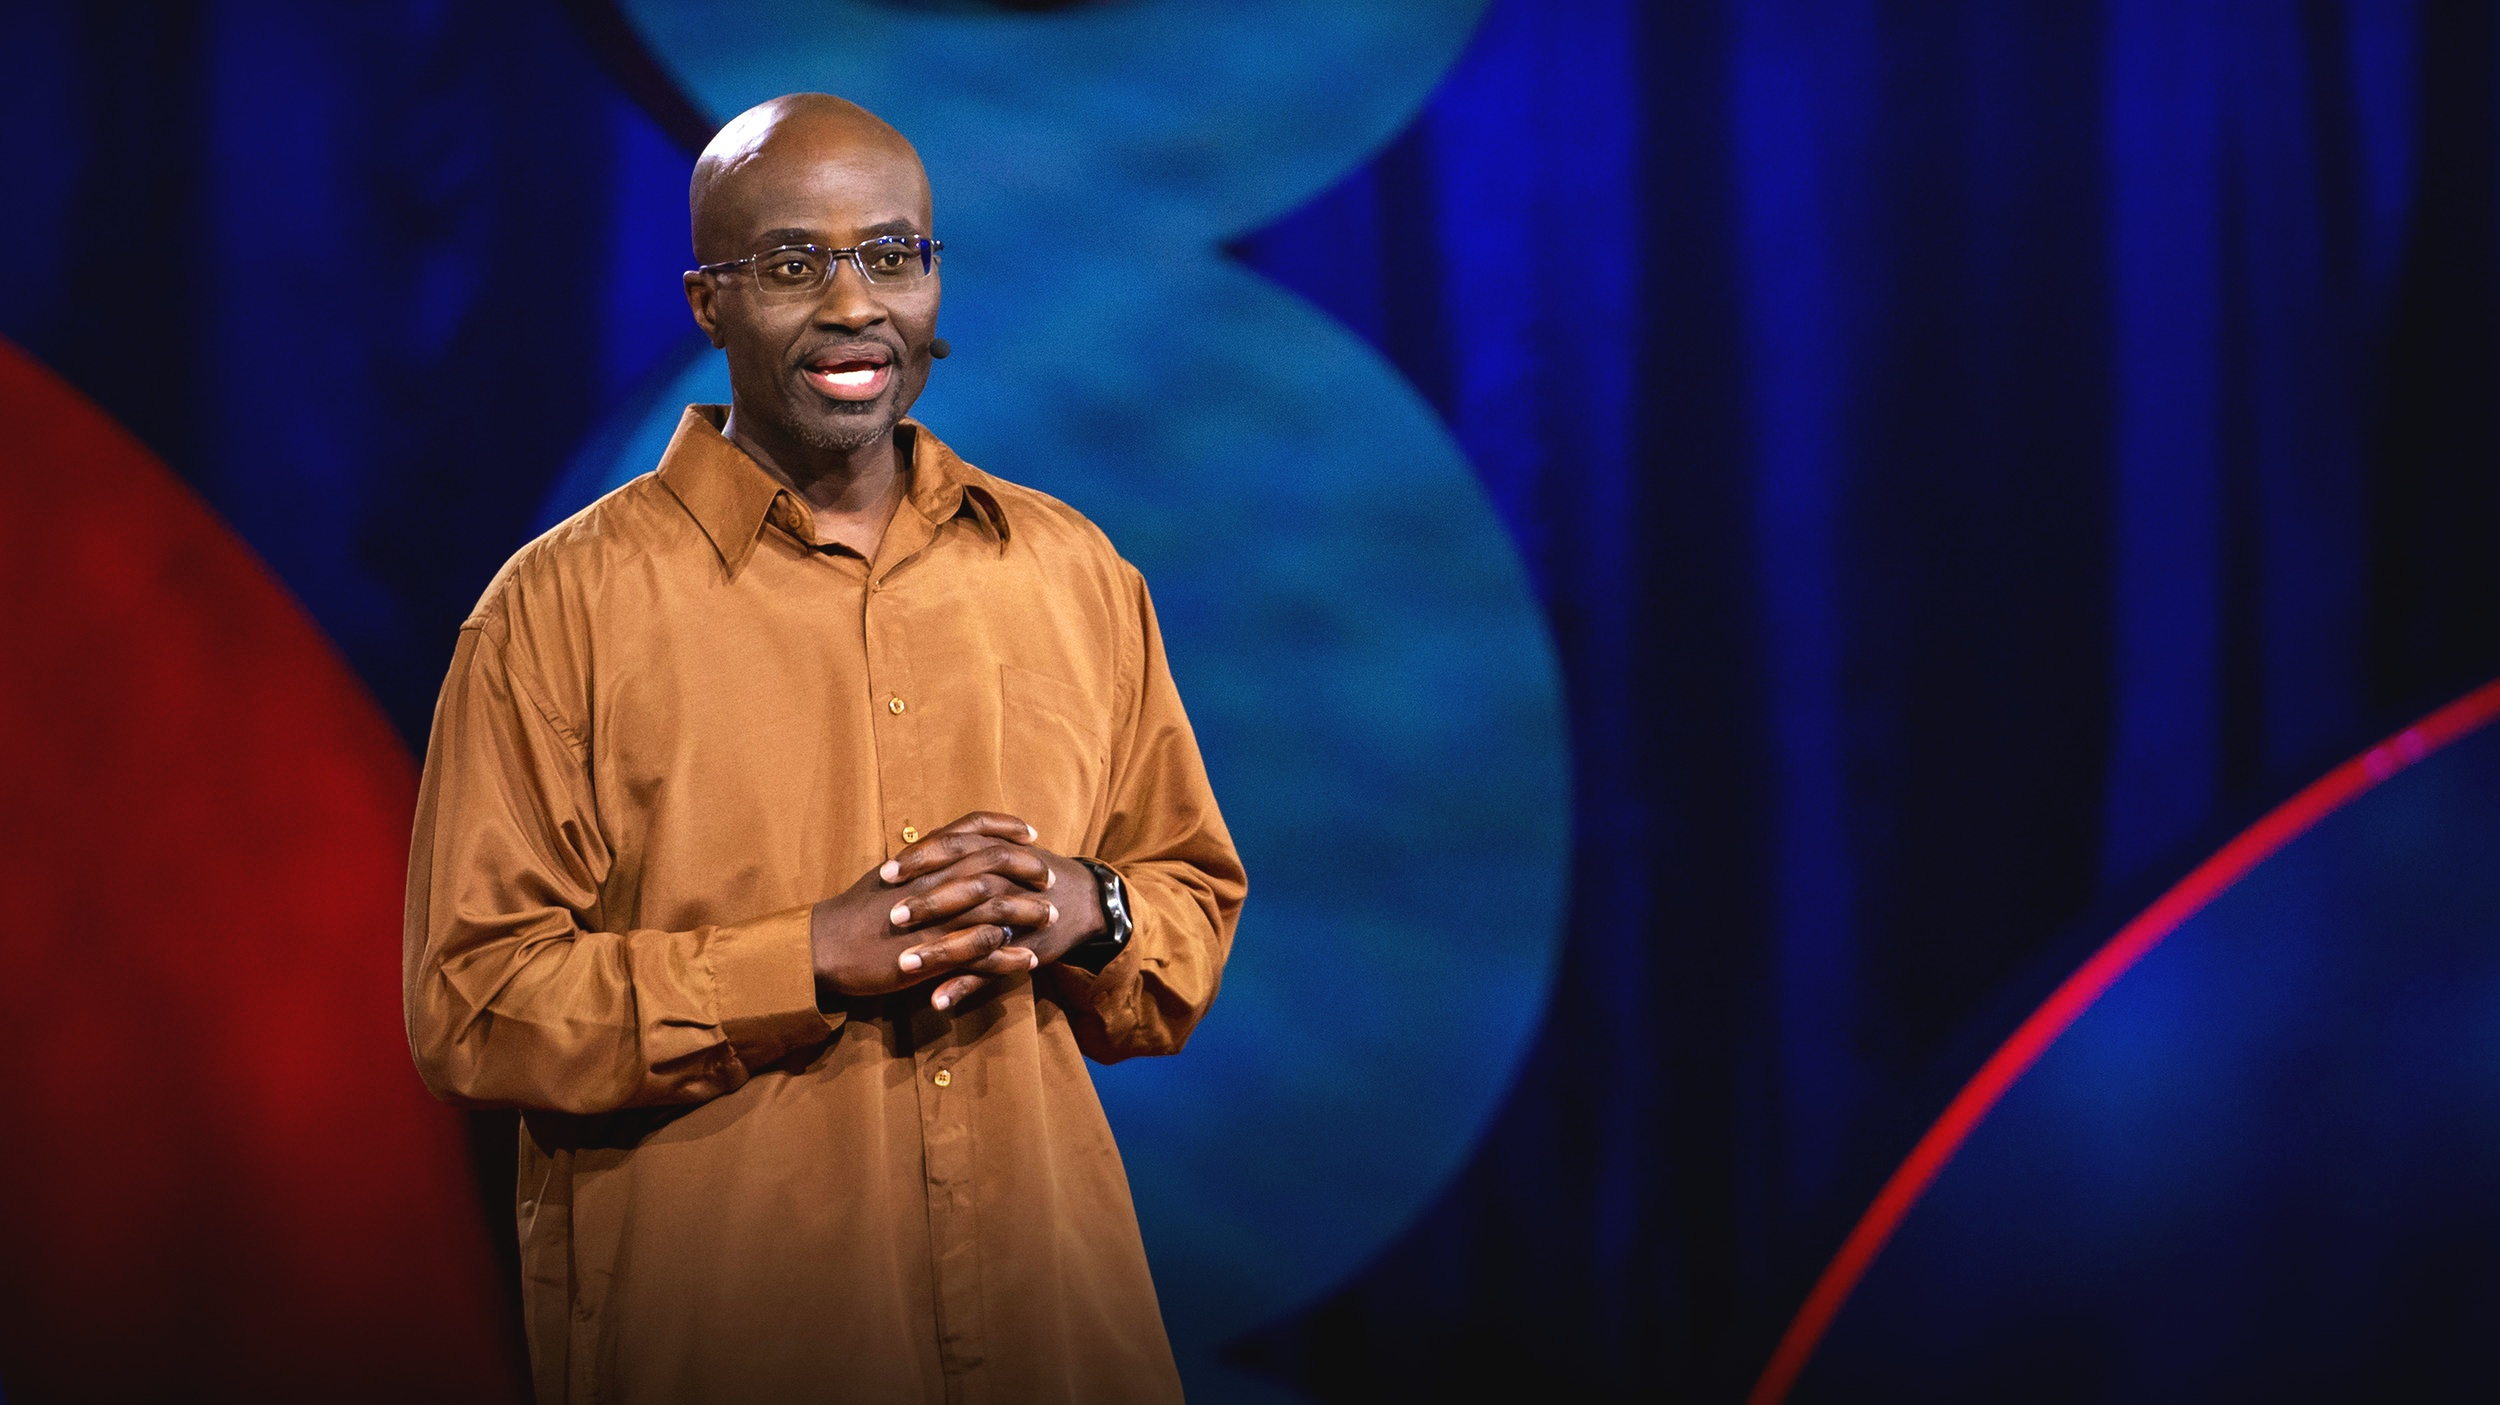 Eldra Jackson III - Educator Eldra Jackson III explores the dangers of toxic masculinity and what it means to create a new image of a whole, healthy human in a digital age.